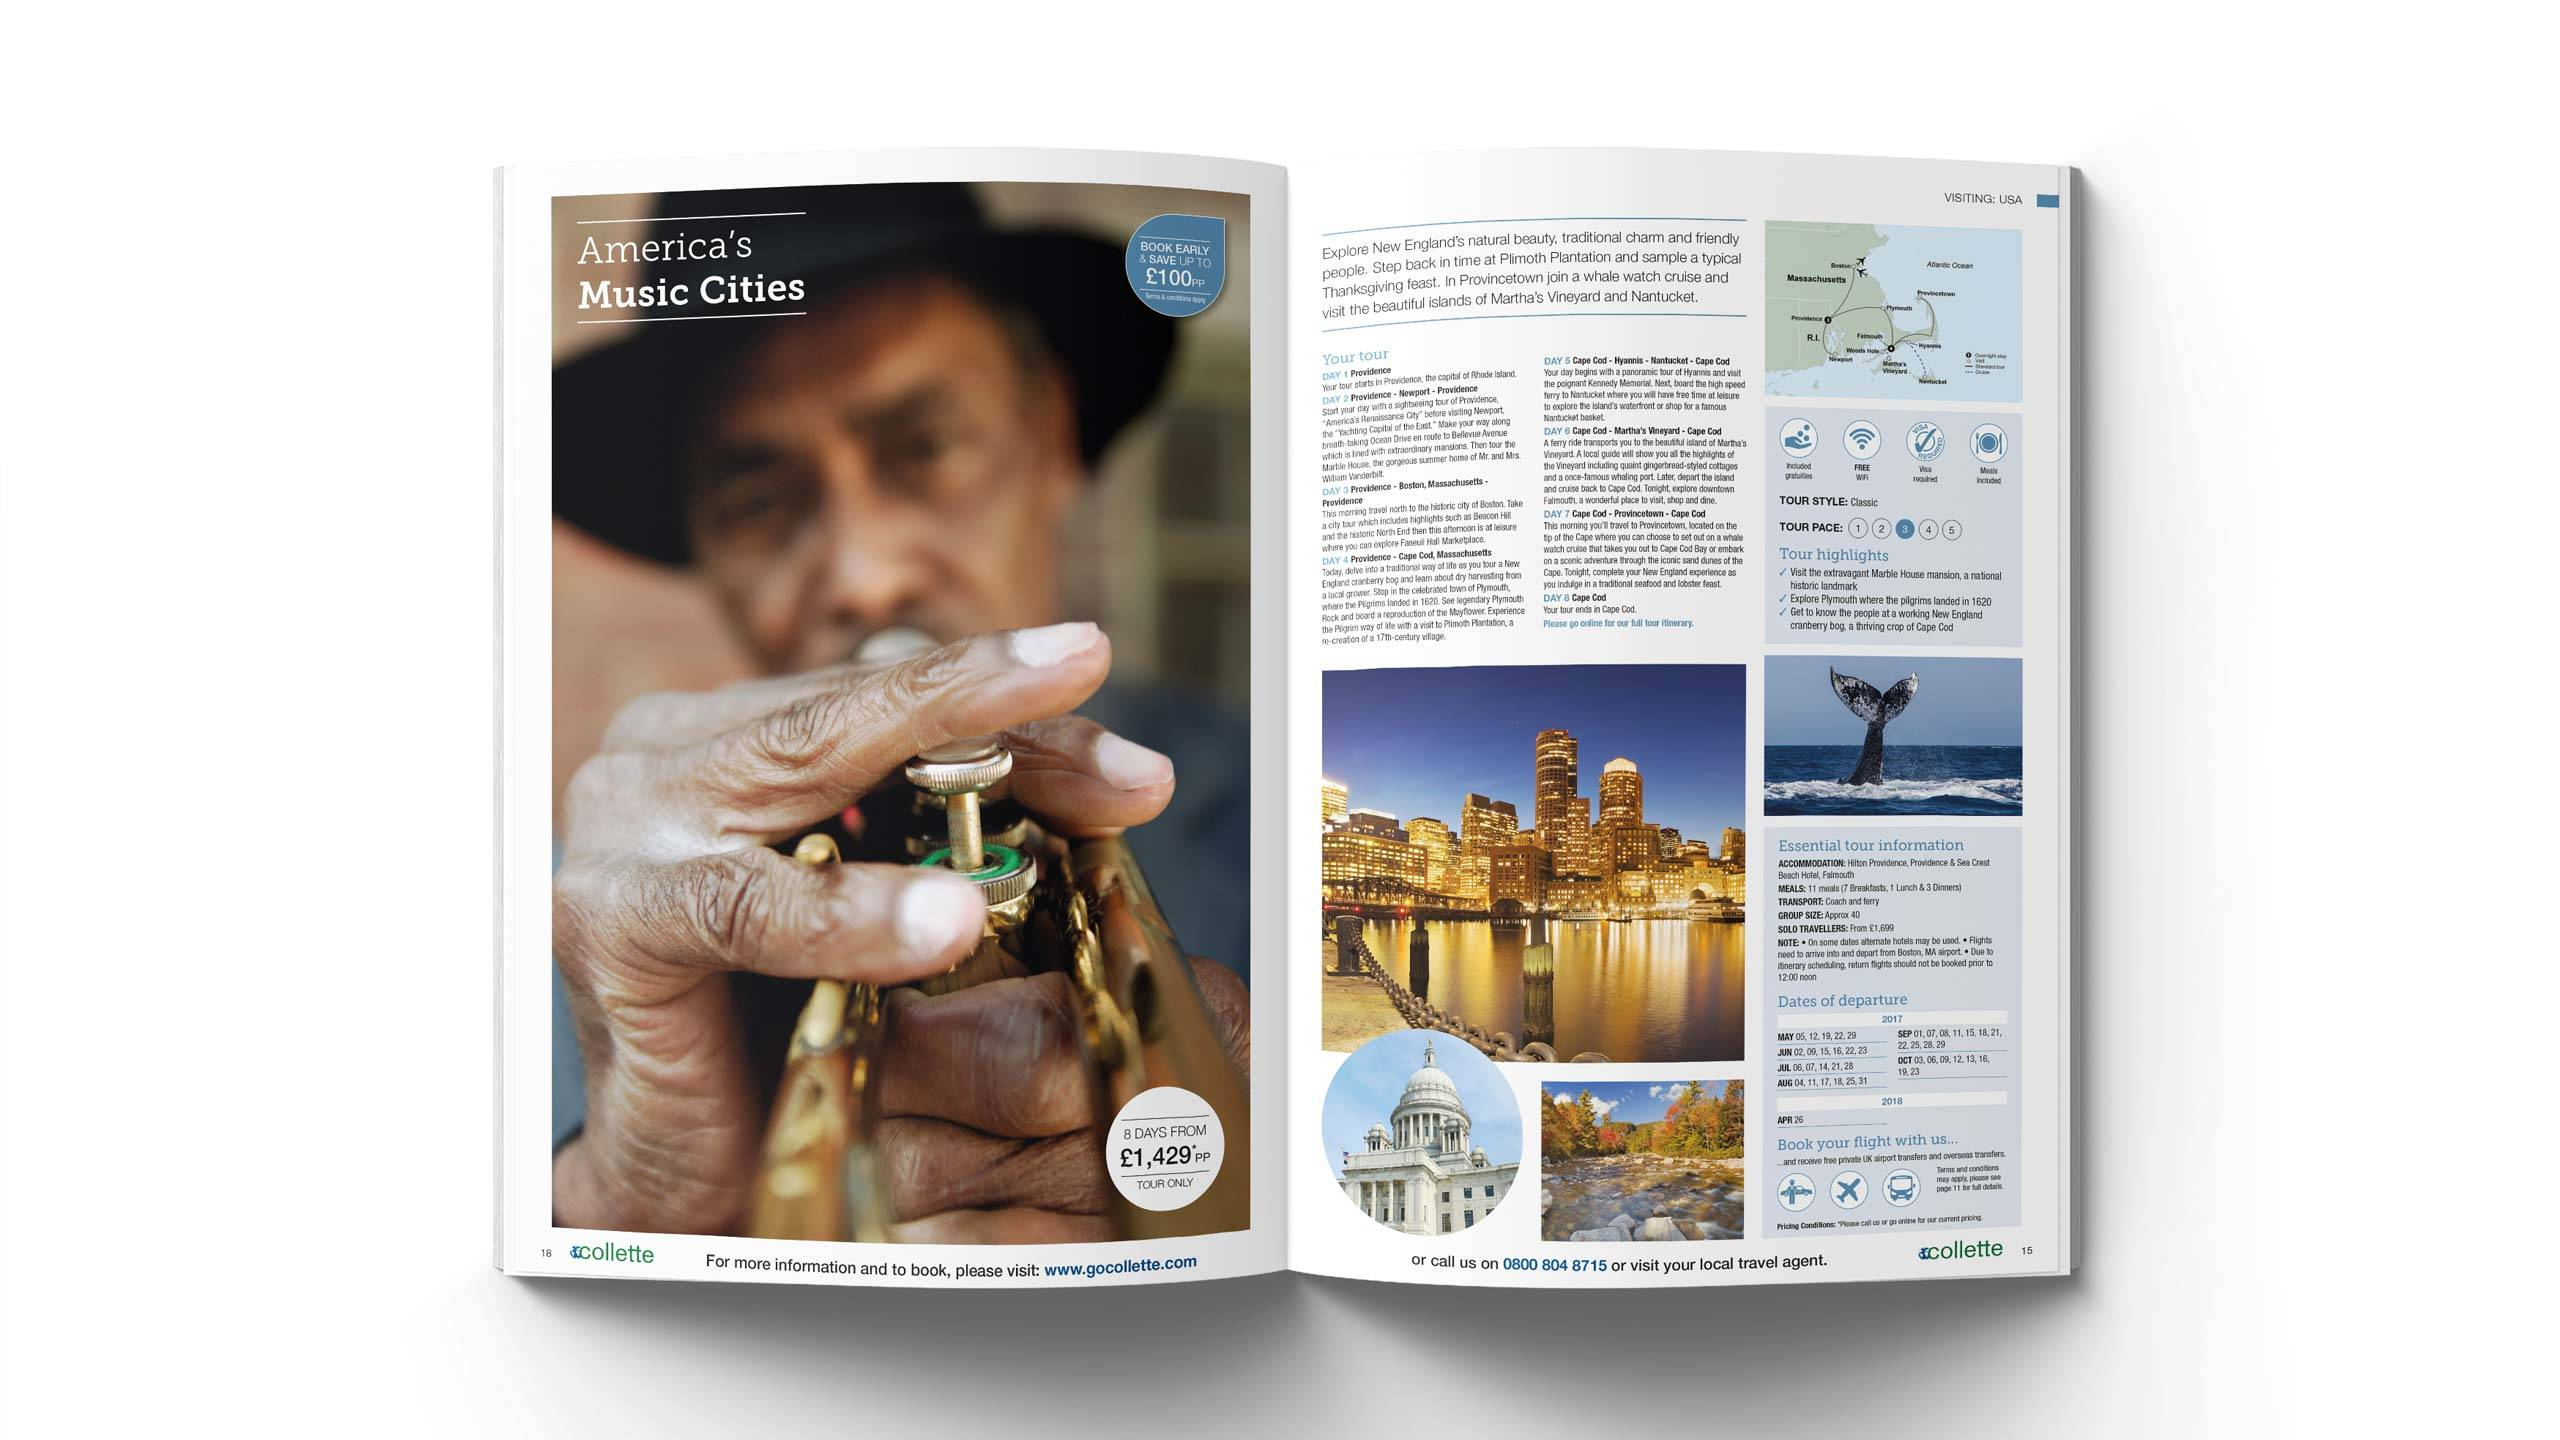 escorted travel brochure design americas music cities pages collette thomas cook